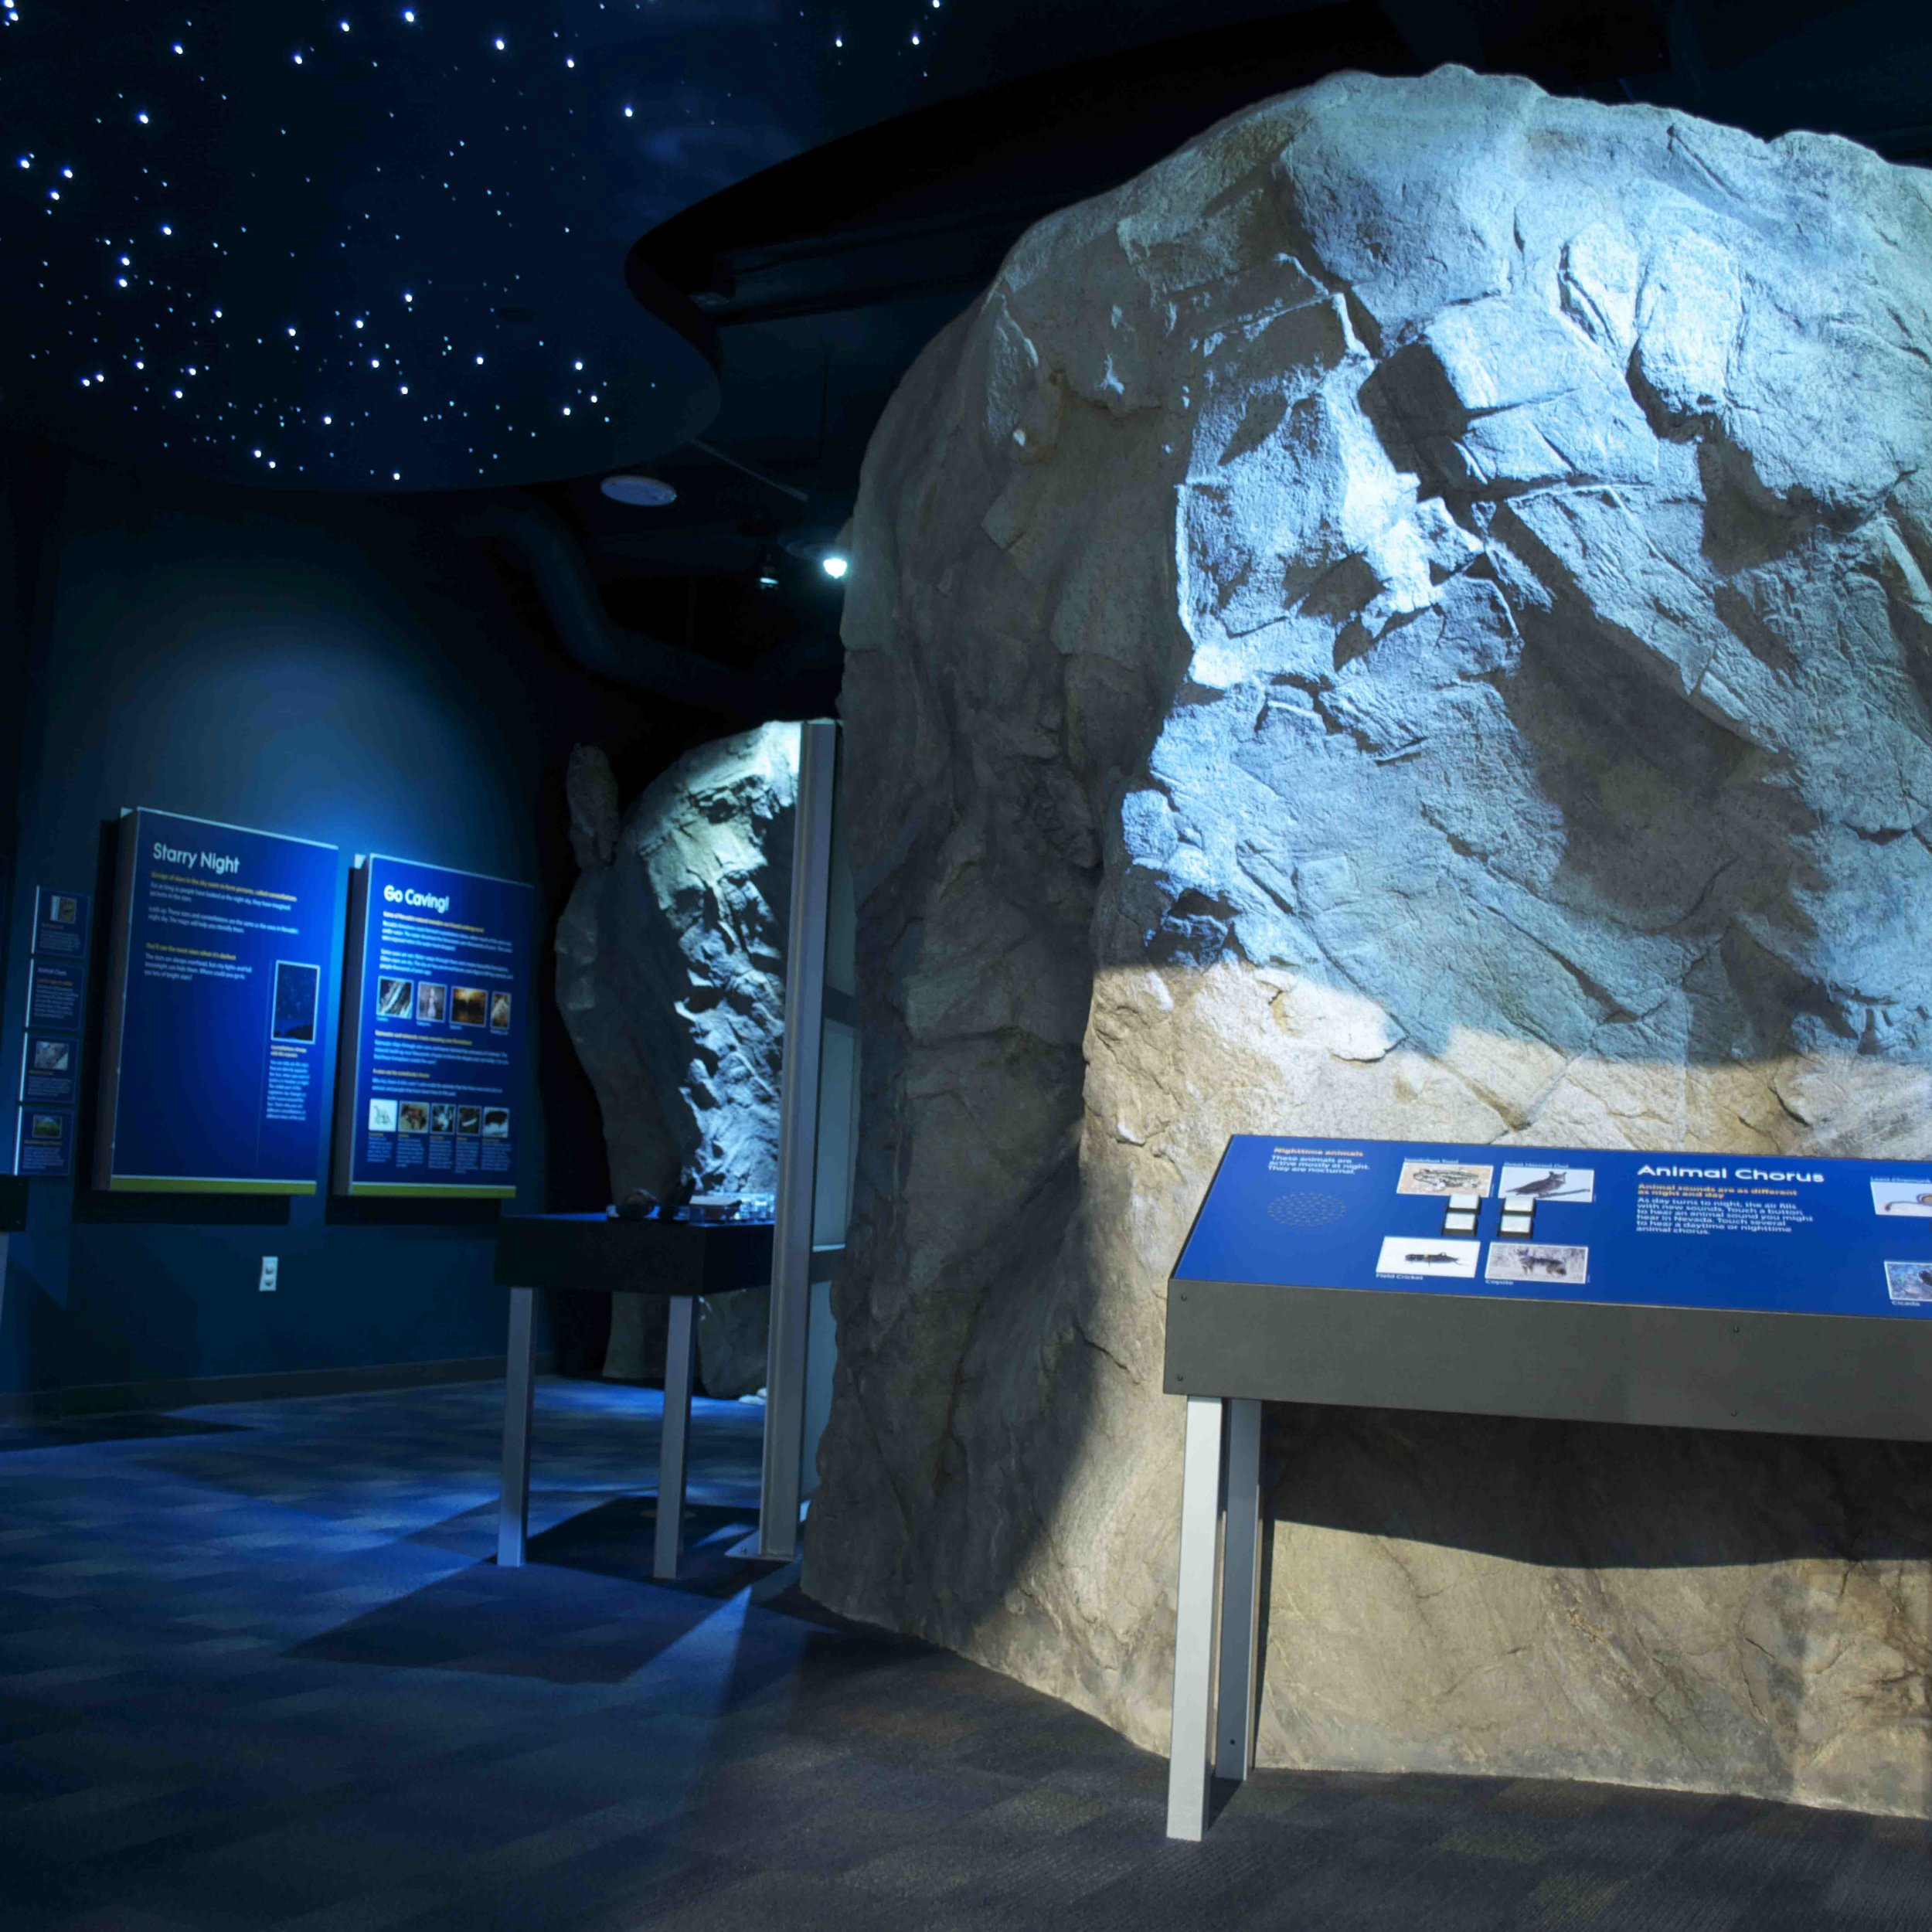 Terry Lee Wells Nevada Discovery Museum : Exhibits (S2 Associates)  Reno, NV